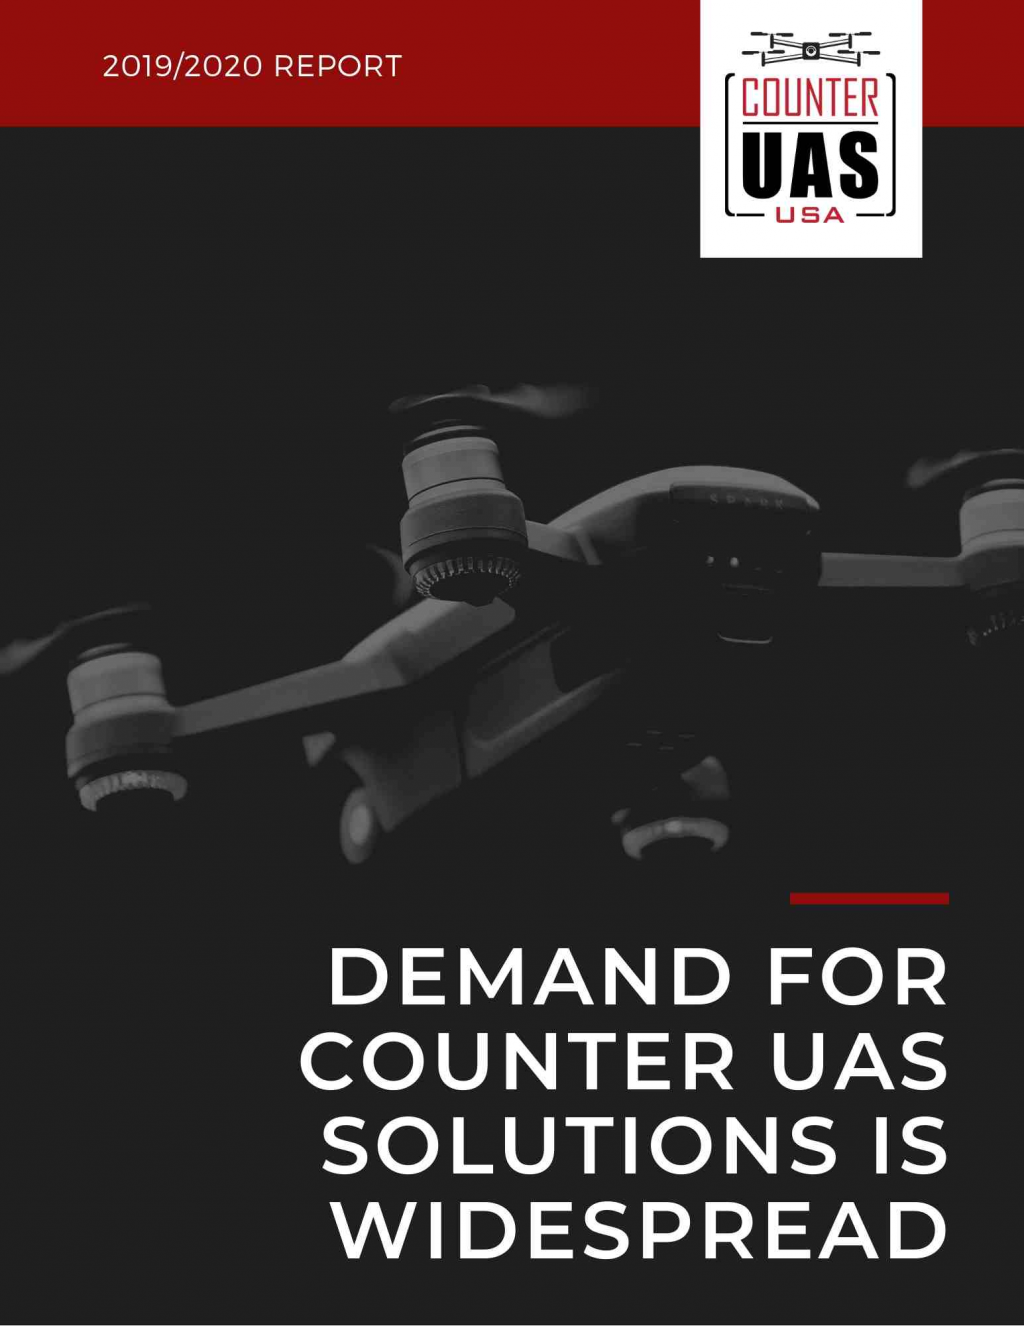 Demand for Counter UAS Solutions is Widespread